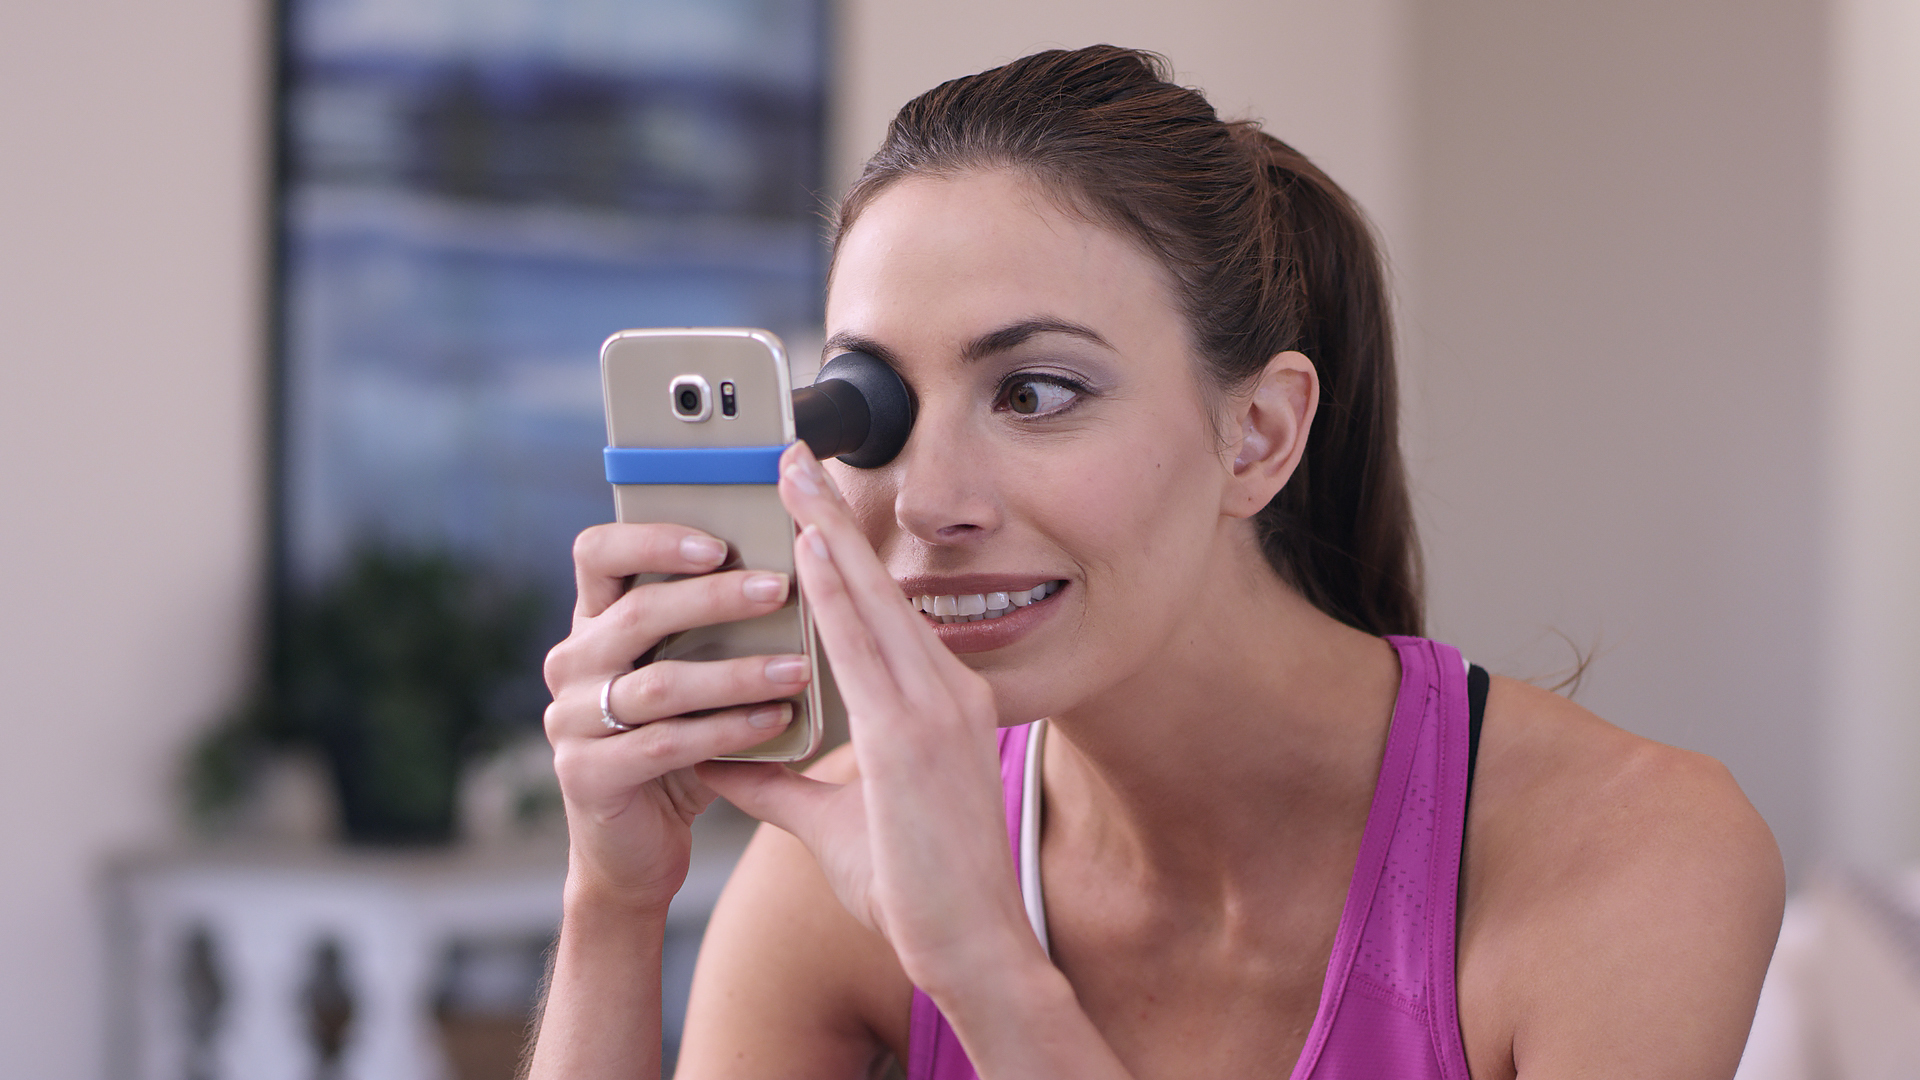 Who Can Use Eyeque Personal Vision Tracker?